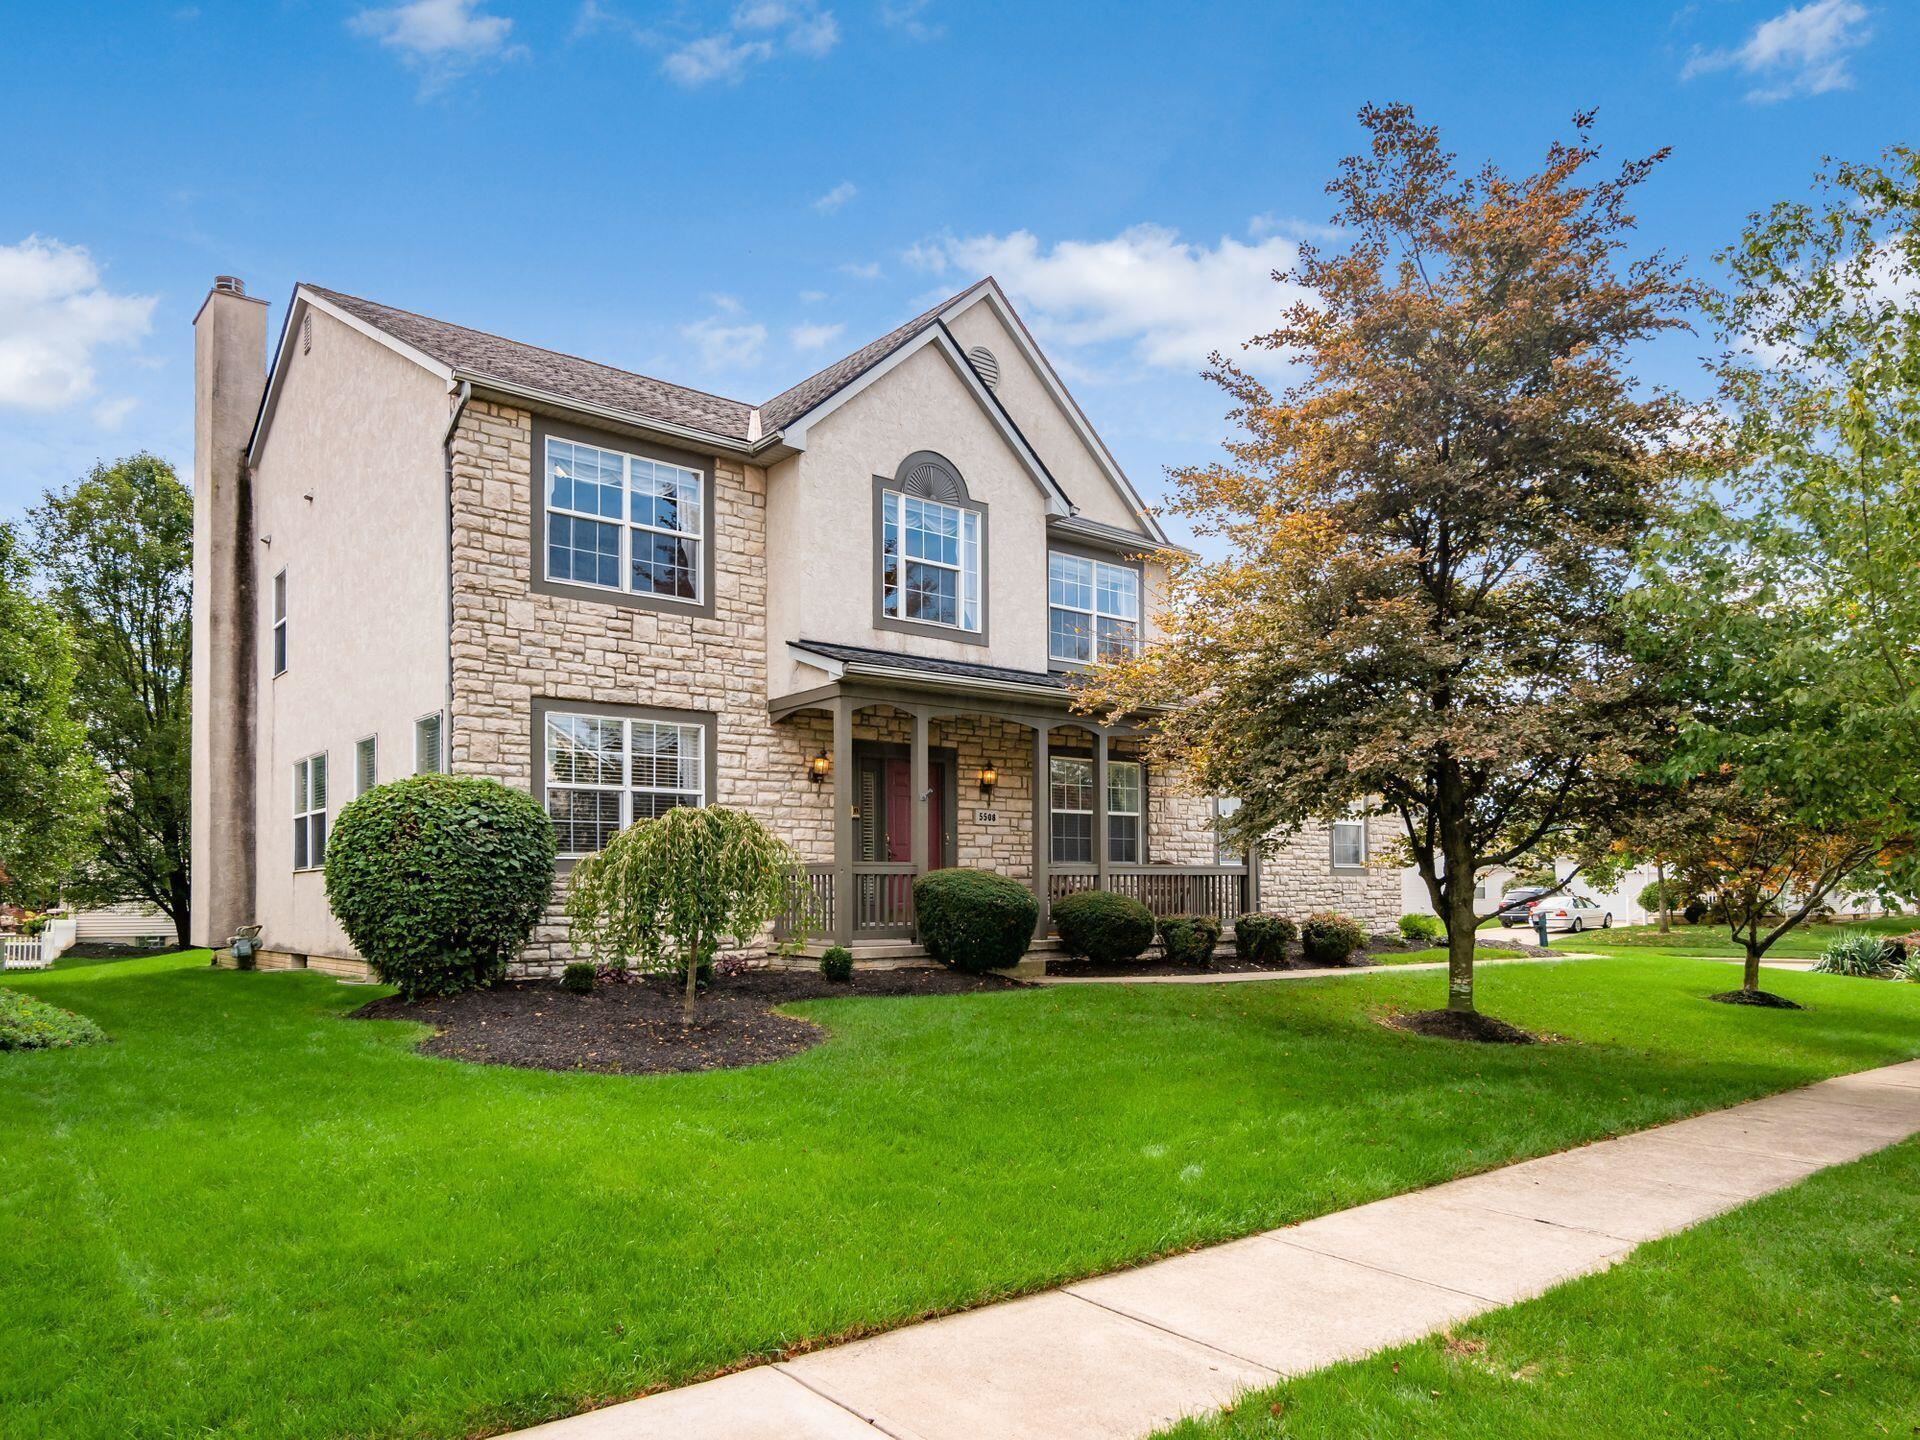 Photo of 5508 Falco Drive, Westerville, OH 43081 (MLS # 221039775)